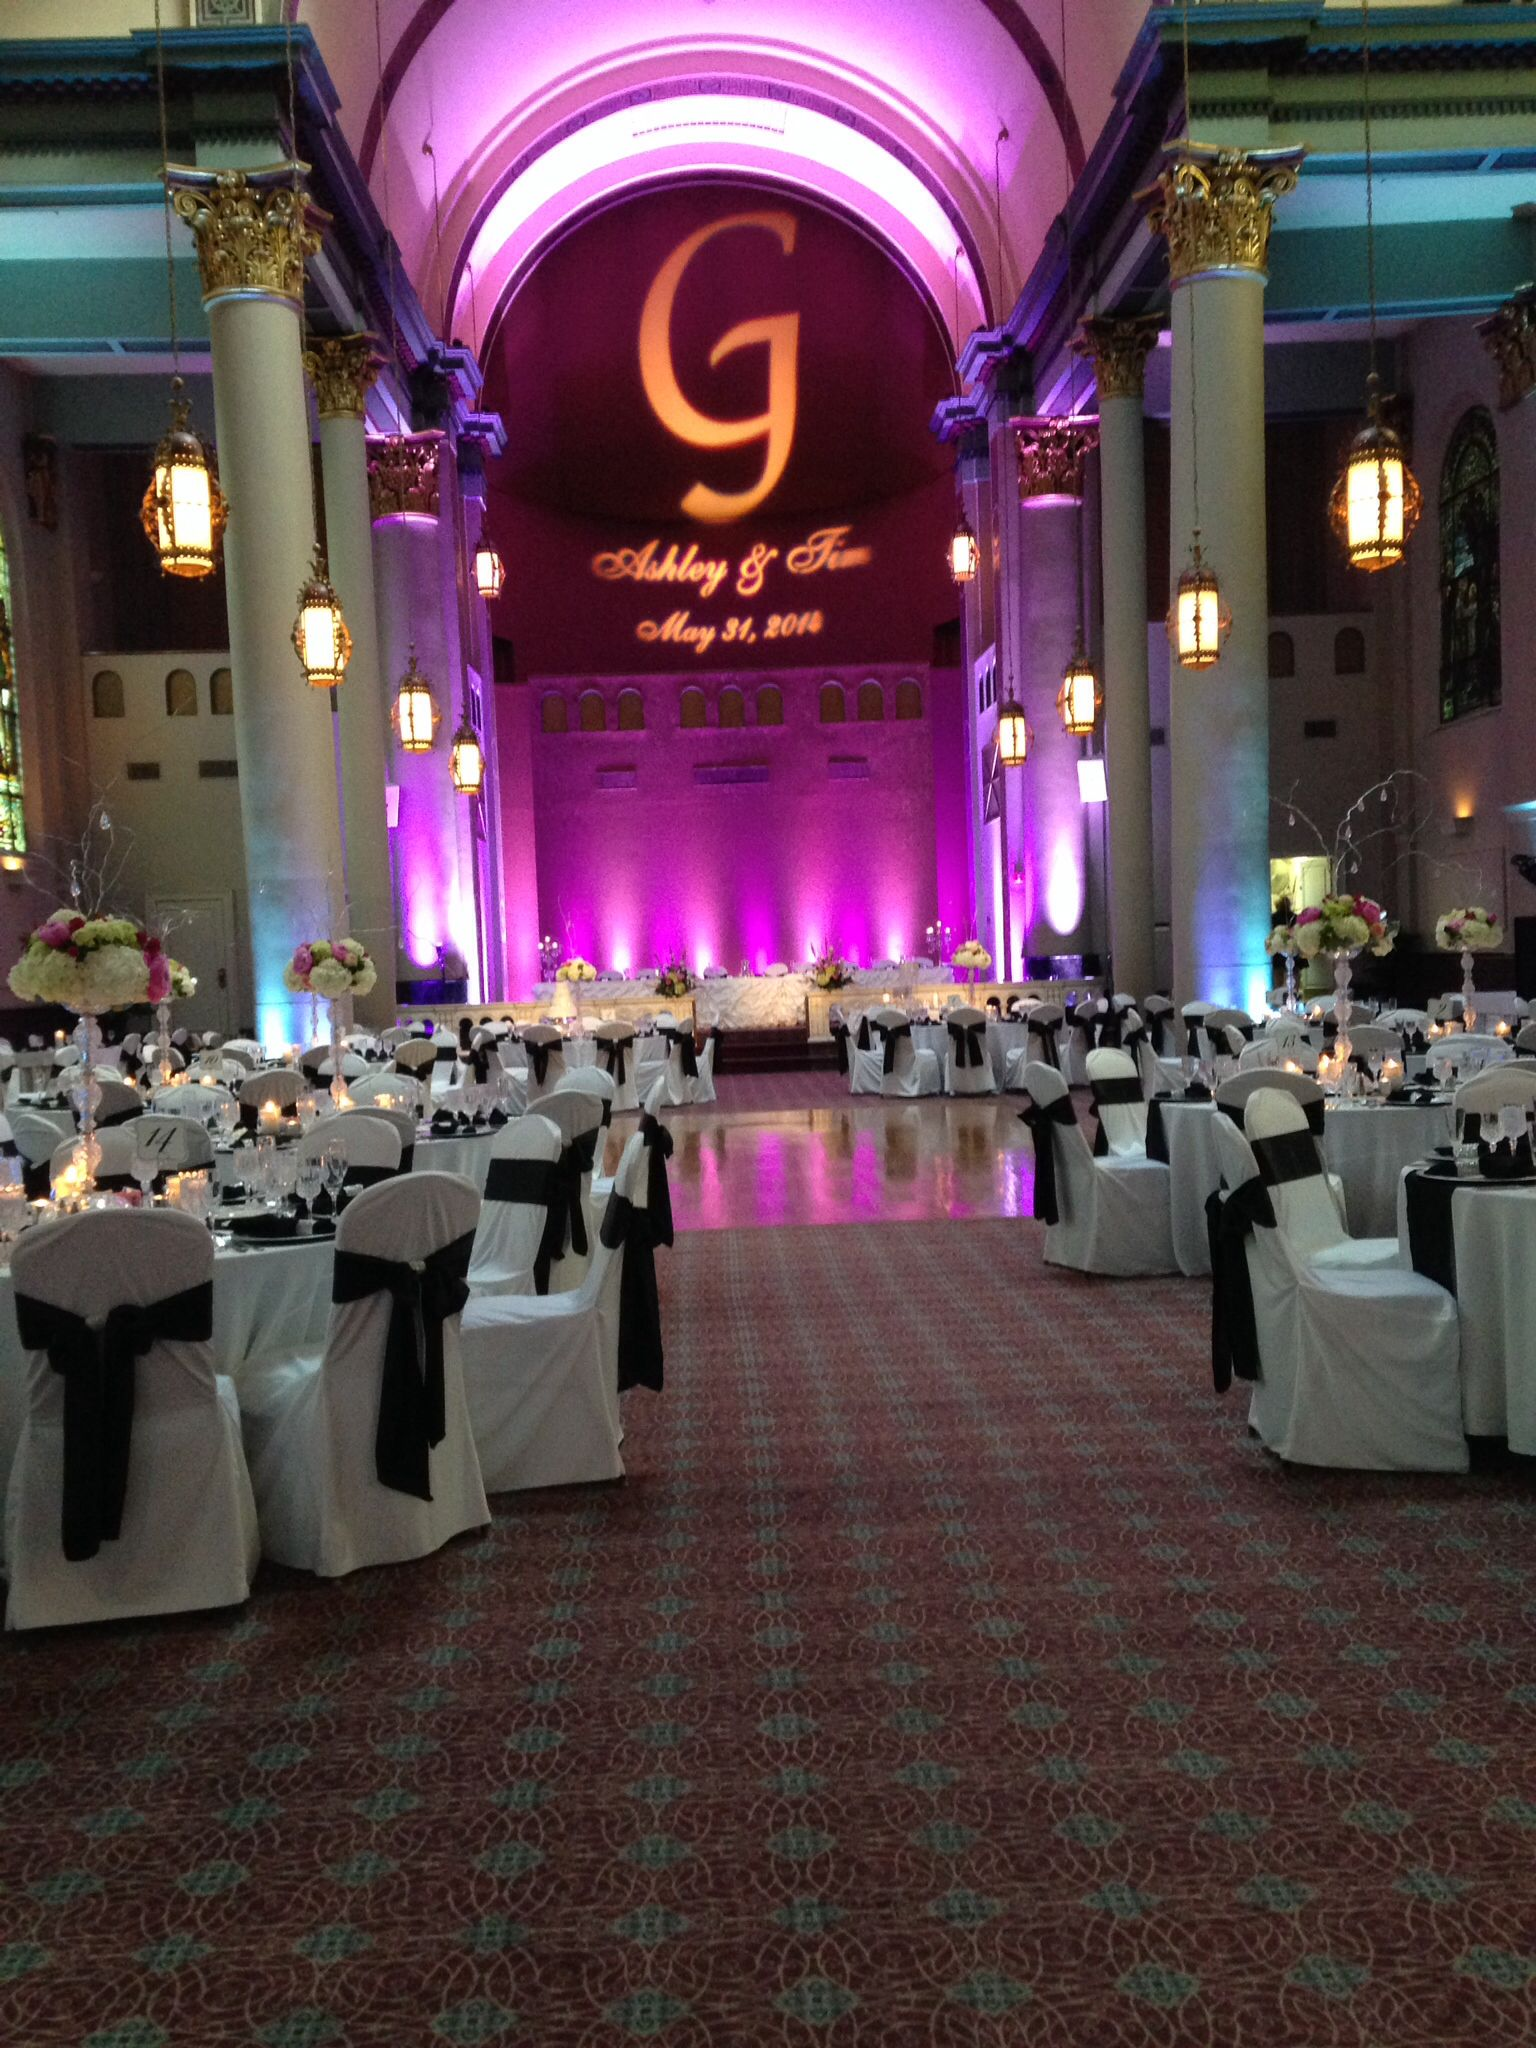 Pin by Pittsburgh's Grand Hall at The Priory on Weddings